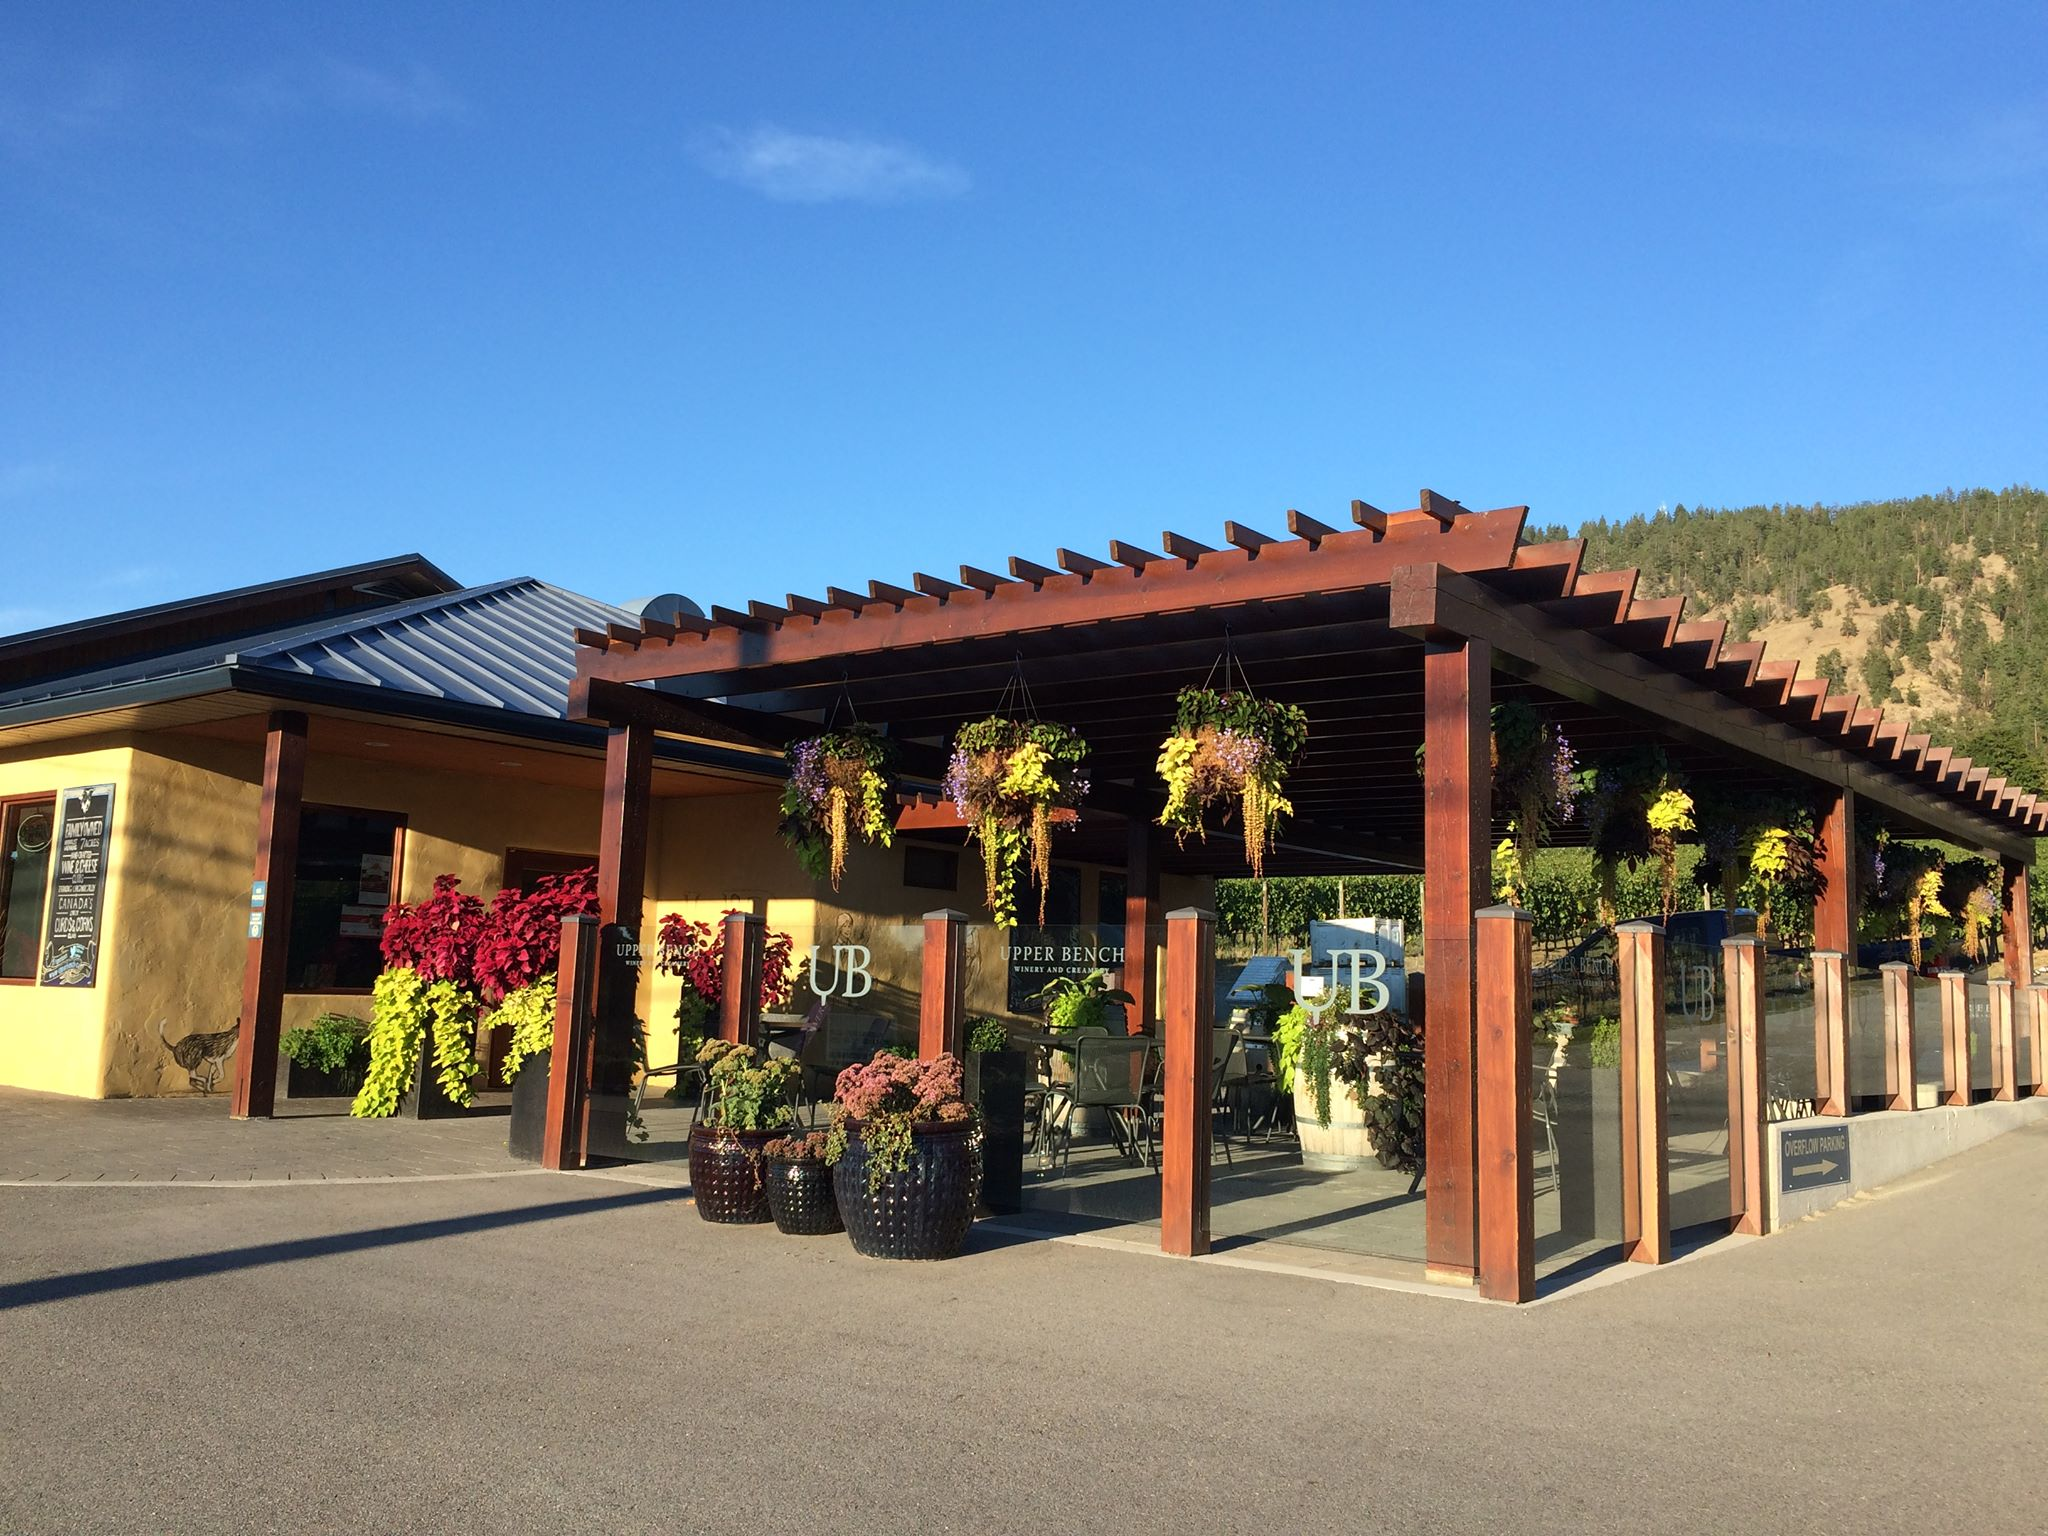 Upper Bench Winery receives its first Lieutenant Governor's Award for BC Wine